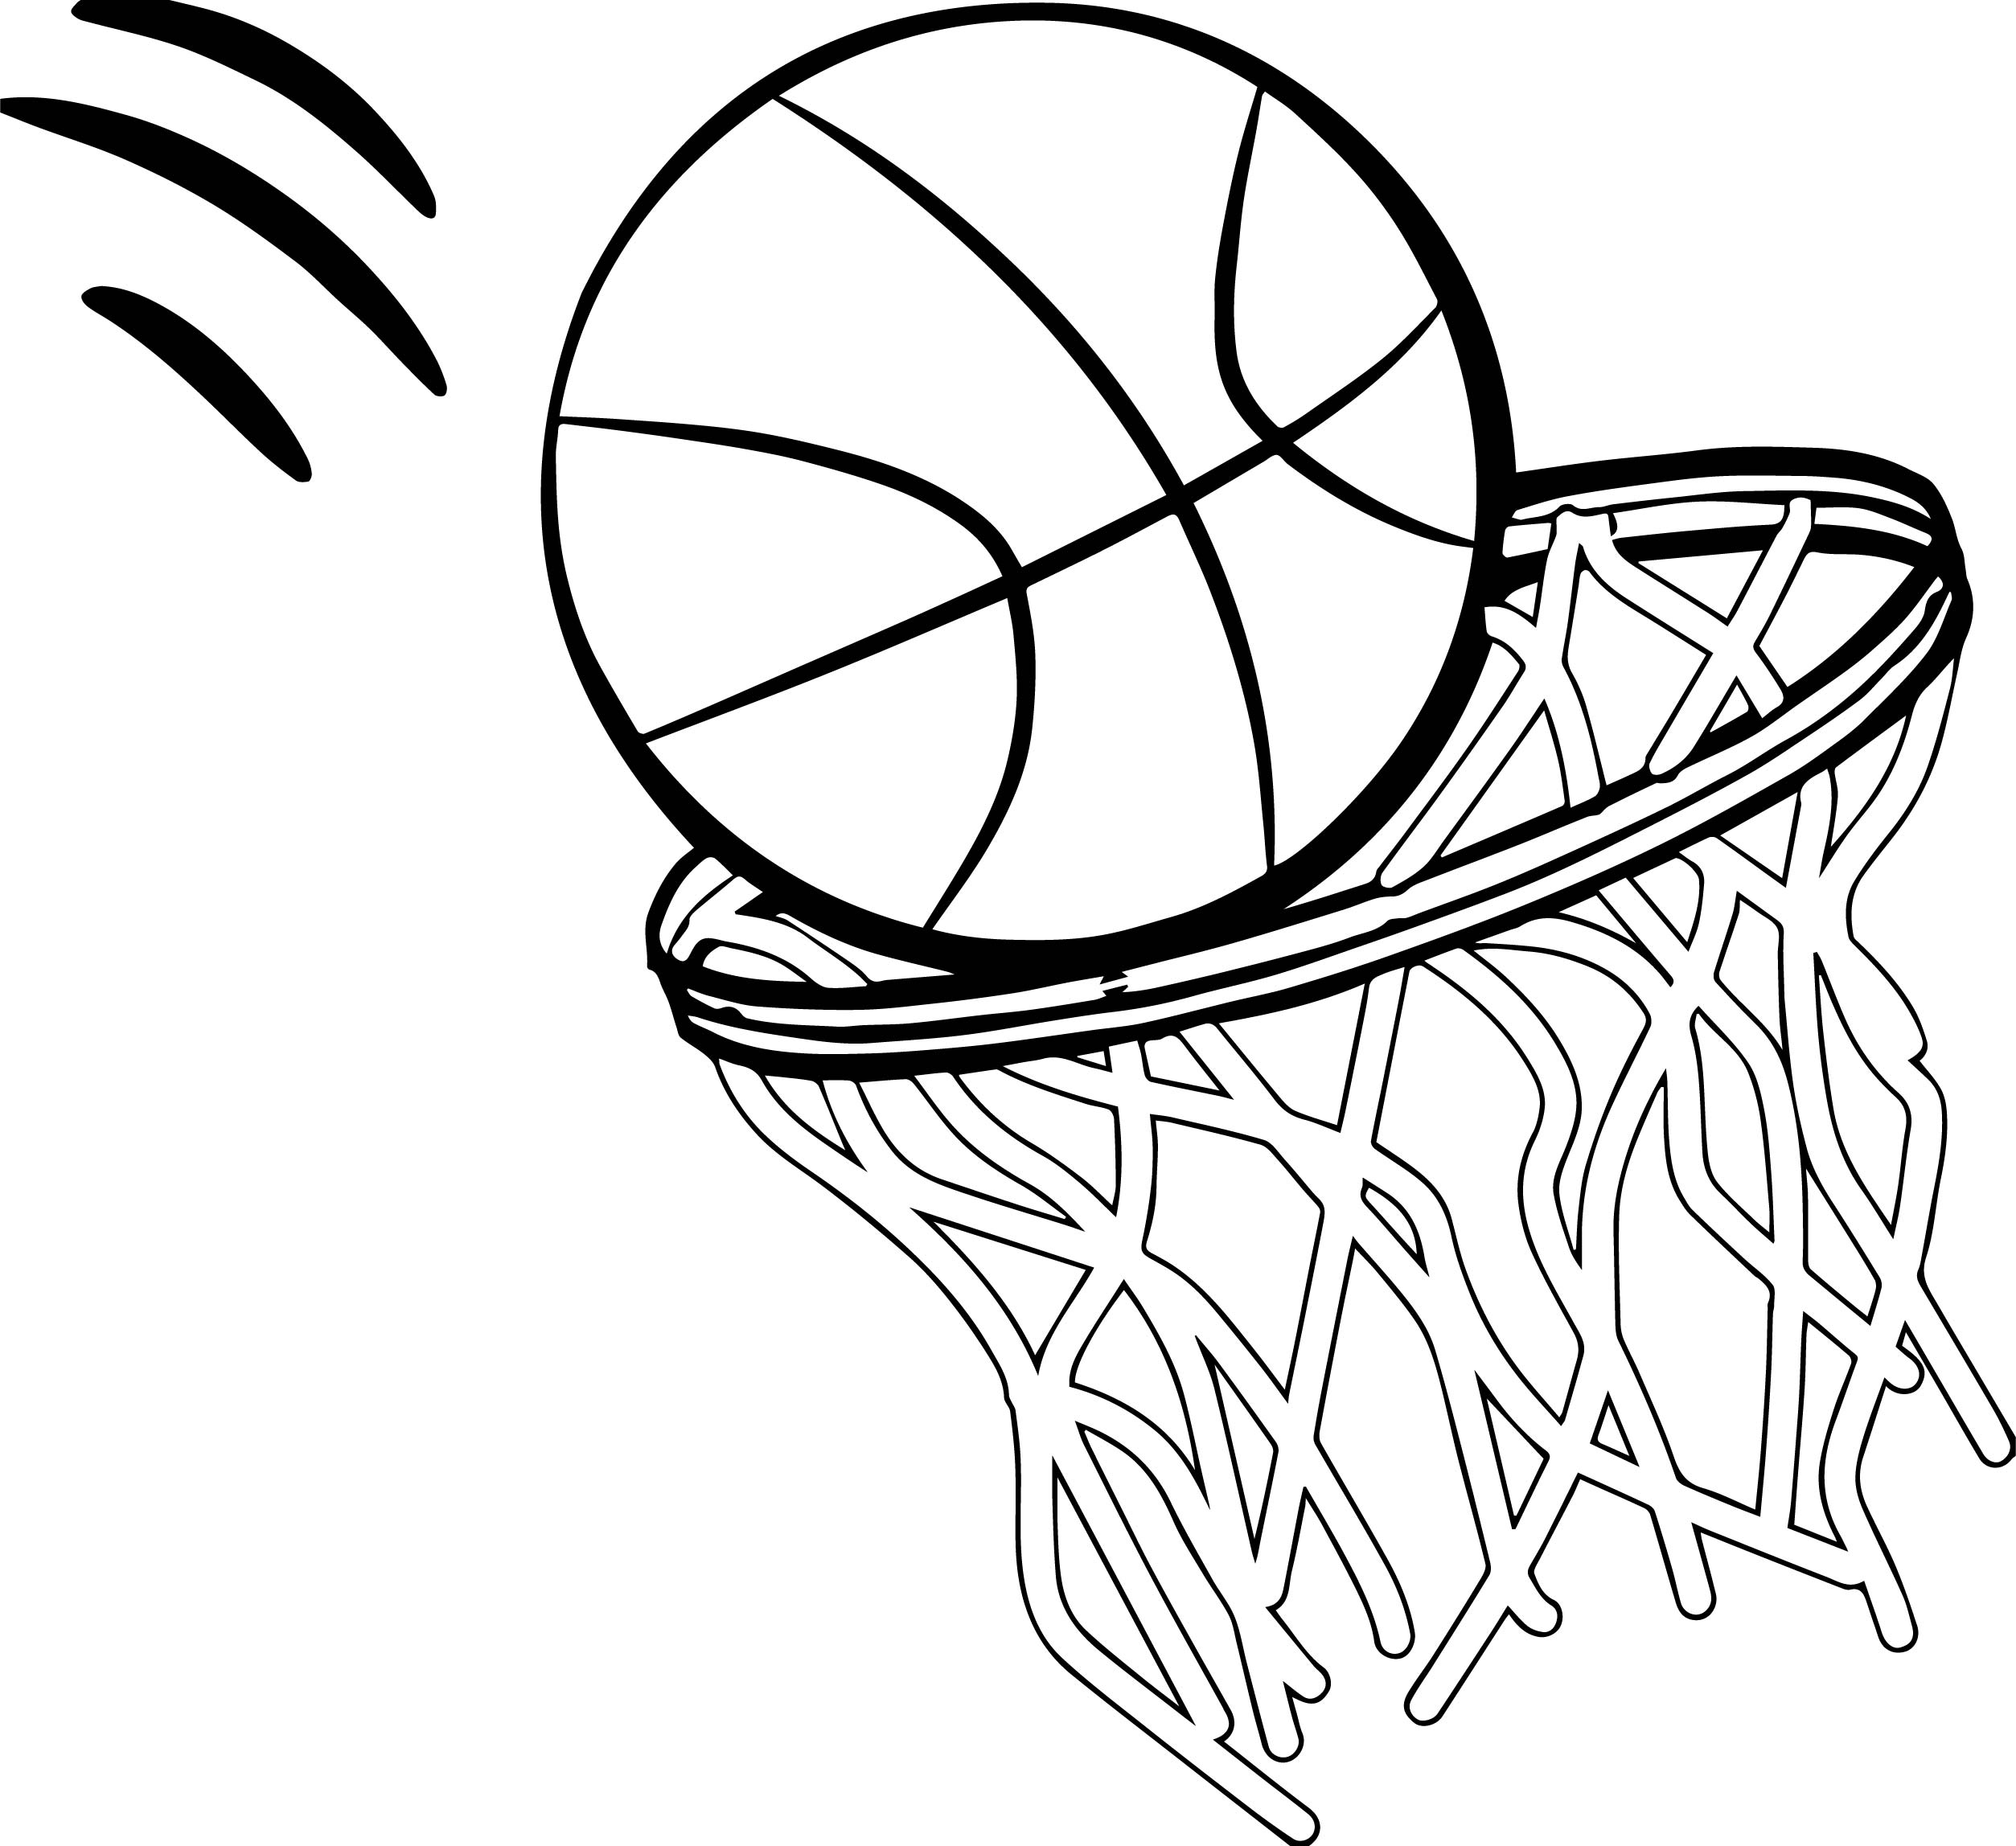 drawing of a basketball drawings of basketball clipartsco a drawing of basketball